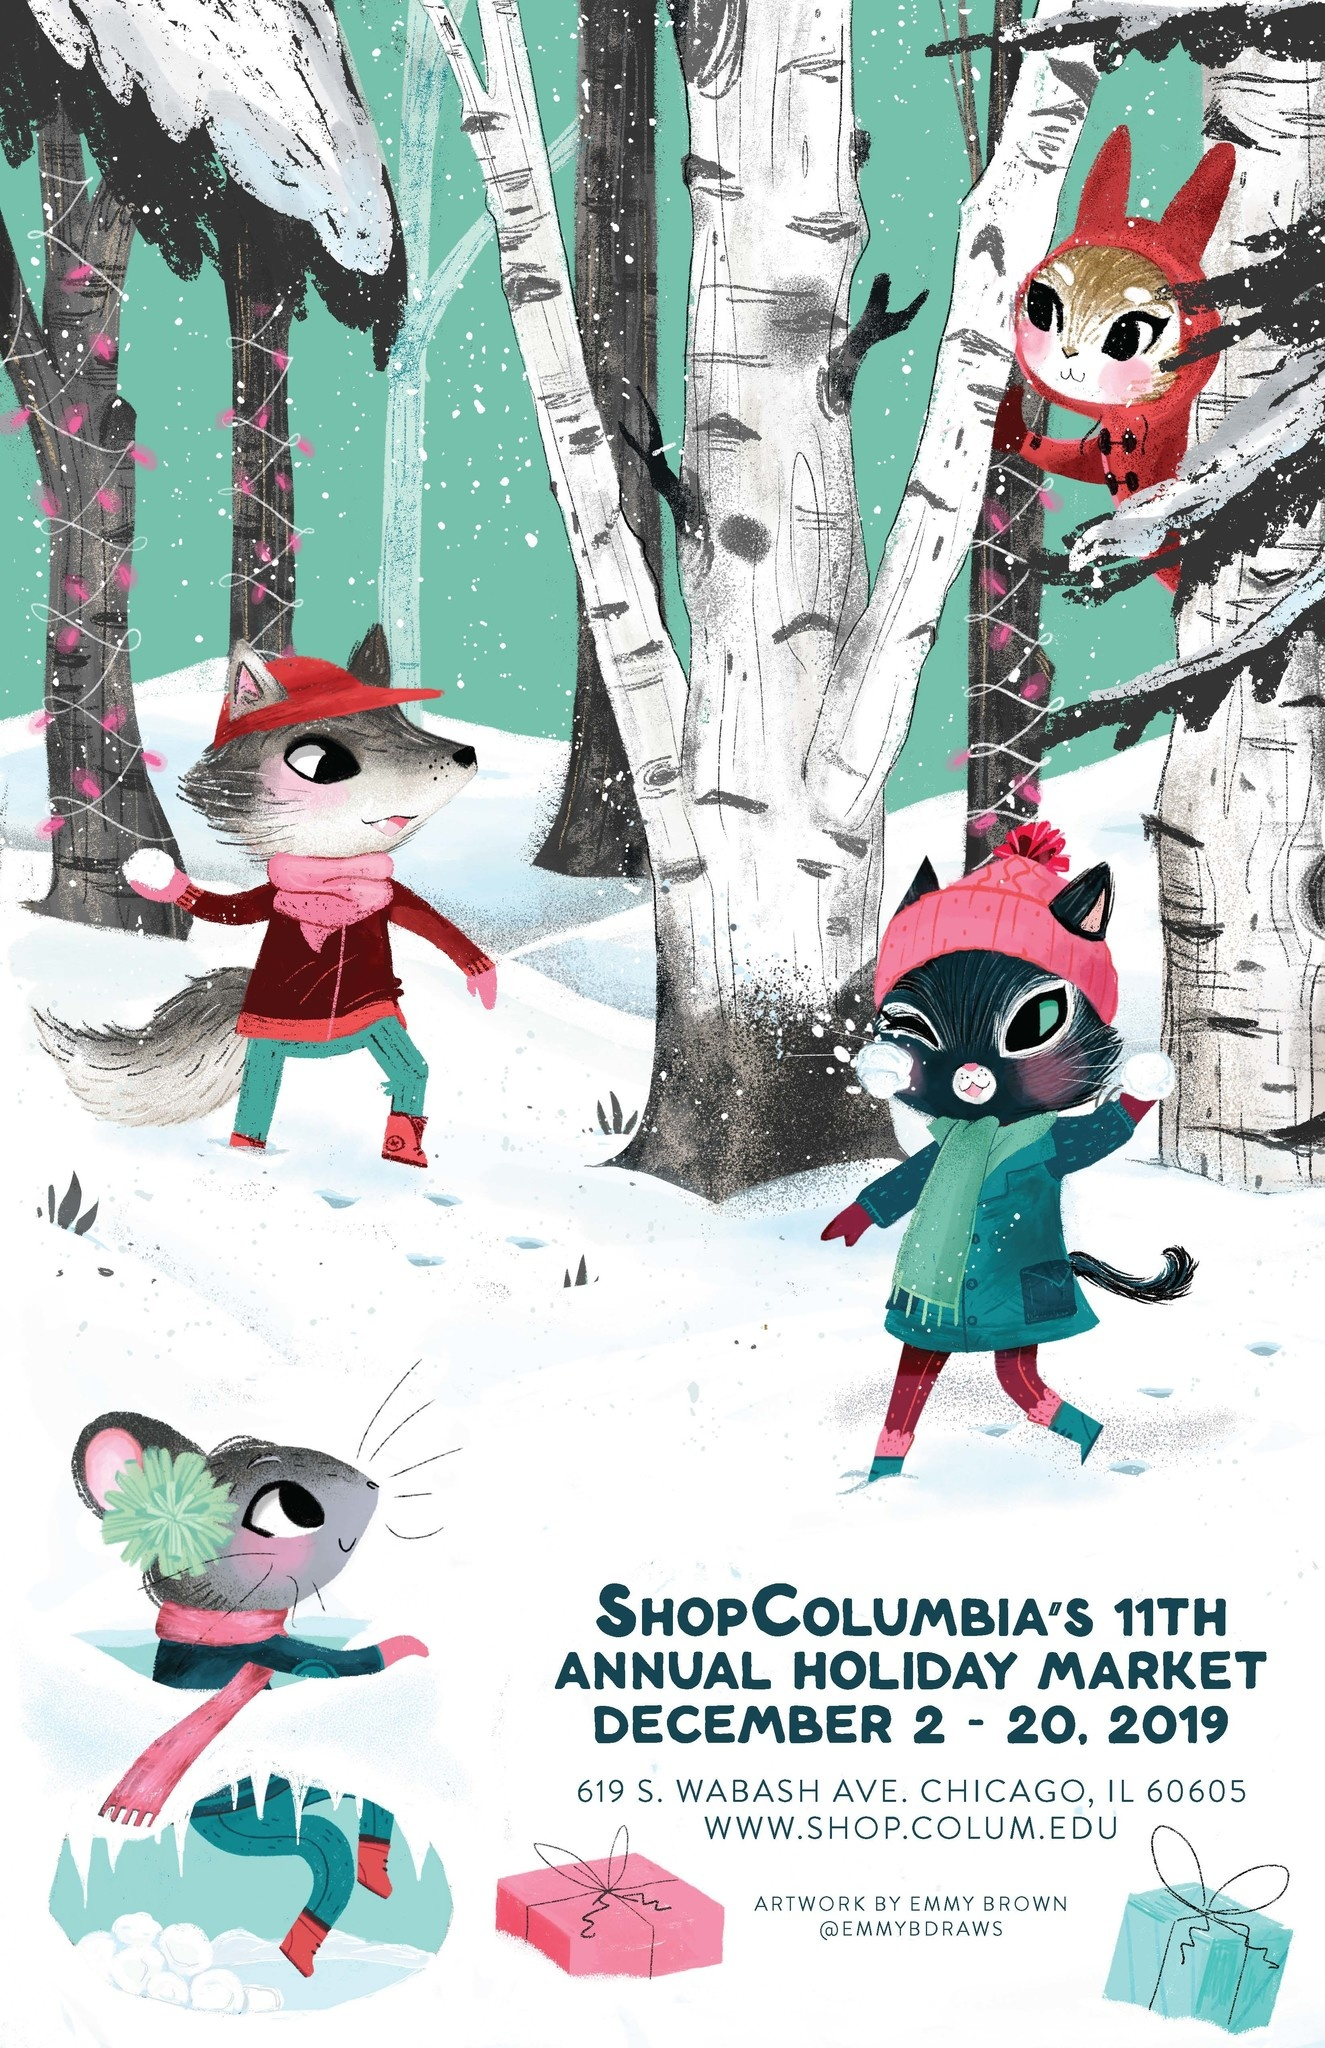 ShopColumbia's 11th Annual Holiday Market